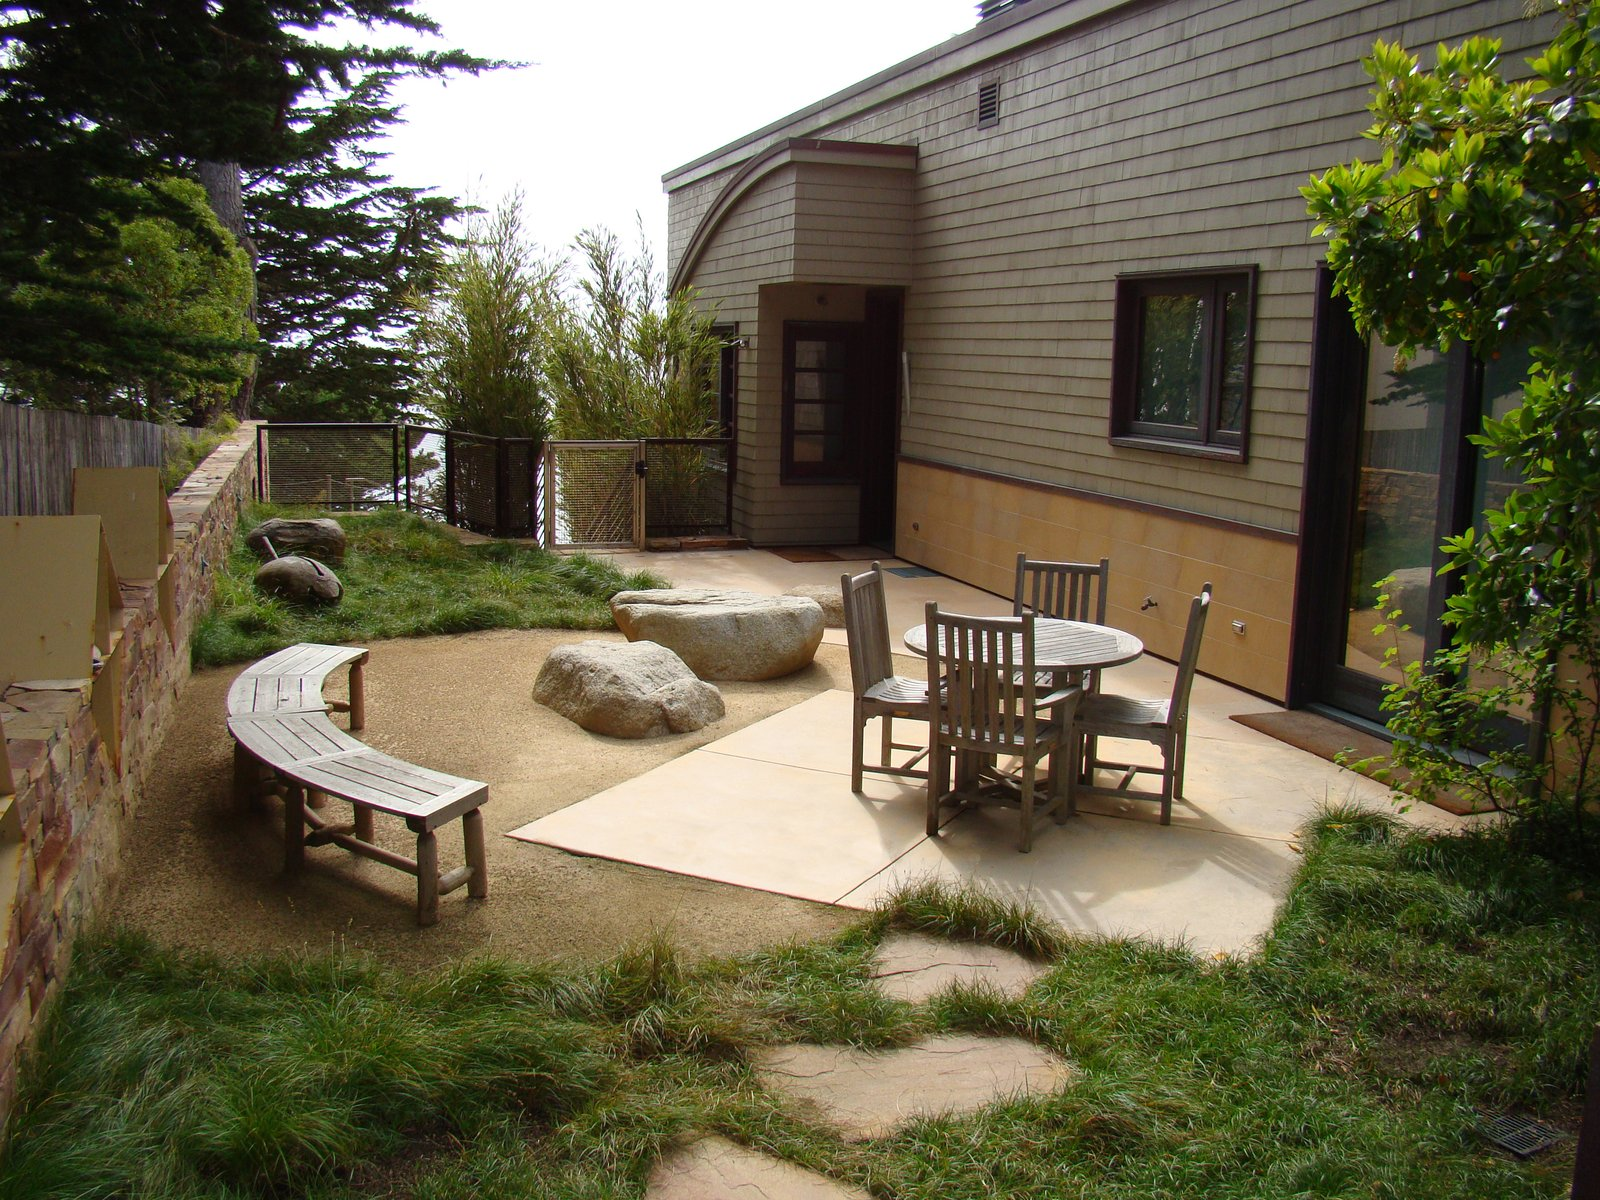 Outdoor, Side Yard, Garden, Trees, Shrubs, Gardens, Grass, Hardscapes, Boulders, Decomposed Granite, Concrete, and Stone A quiet, sheltered outdoor dining area  Outdoor Side Yard Concrete Decomposed Granite Hardscapes Photos from On the Edge